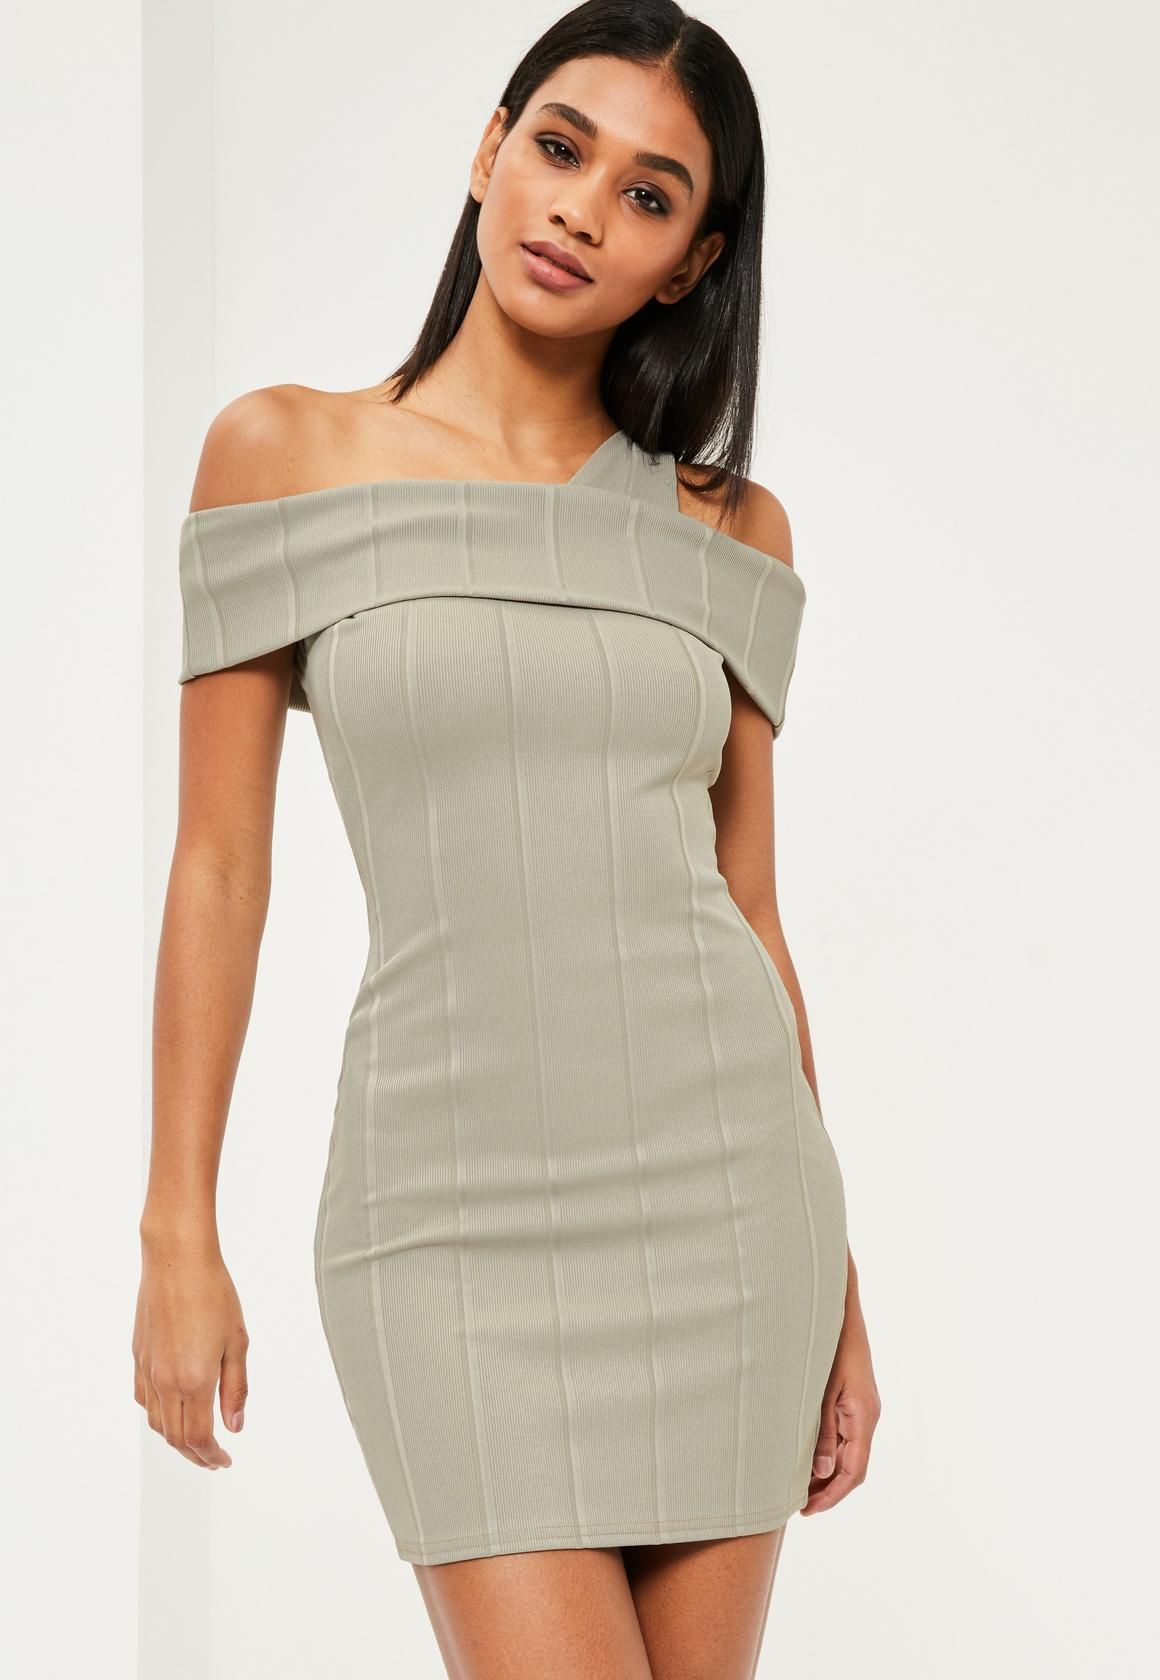 Dresses Online - Women's Online Dress Shop US